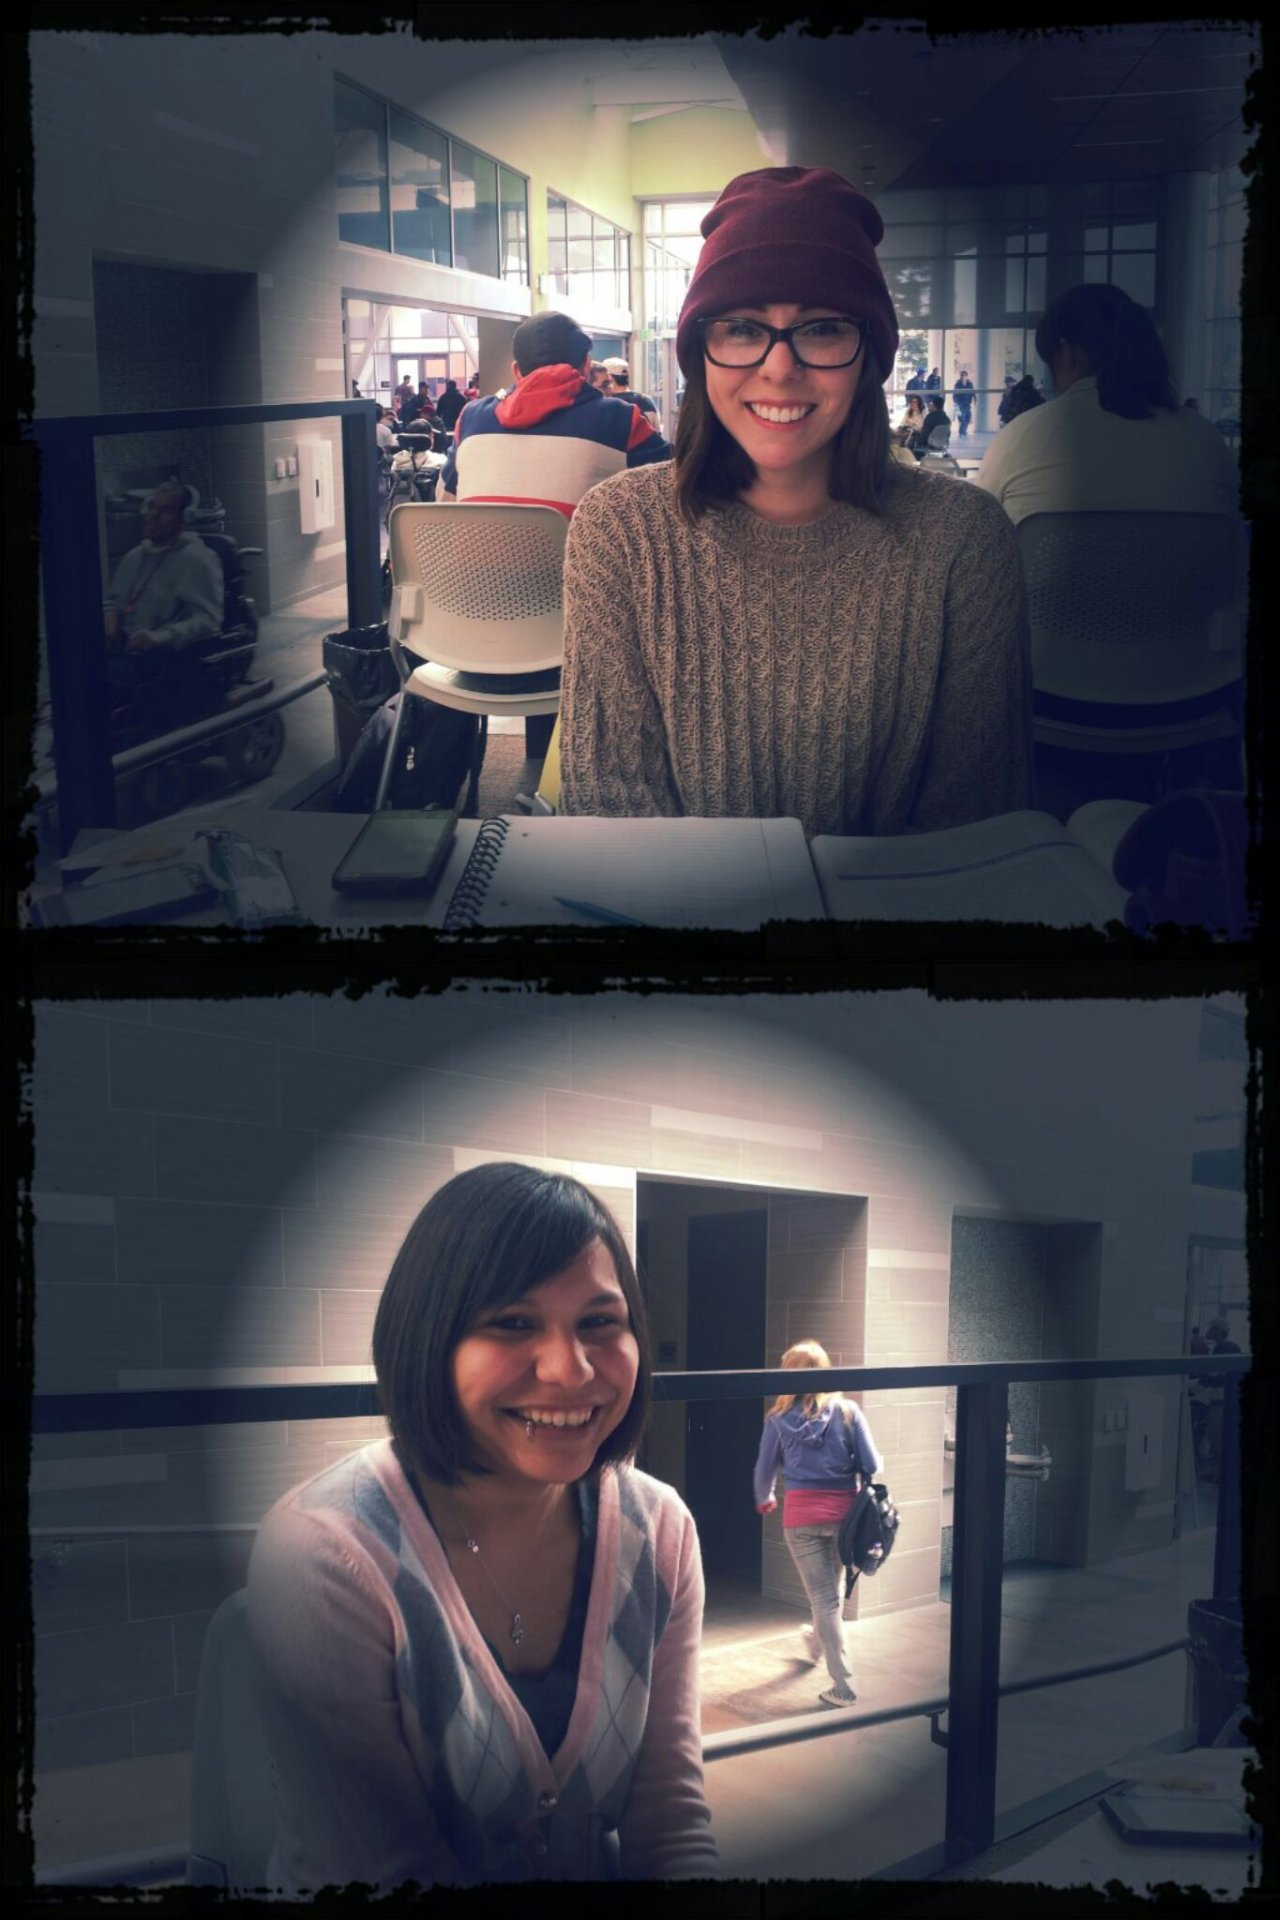 Becka and Mercedes graced my table on Monday with their awesomeness. We laughed about the impending zombie apocalypse.